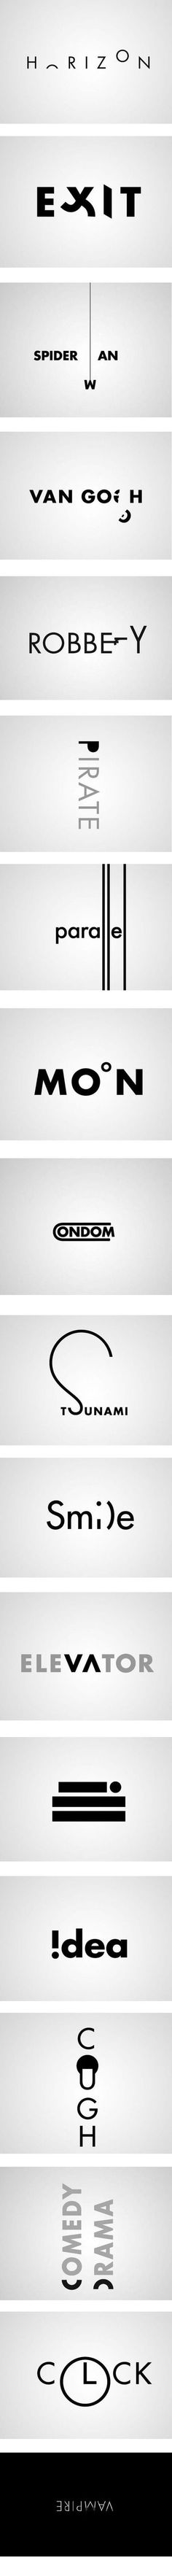 INSPIRATION....I wish I could edit out one of these...hahah awkward! -CJA Clever typographic art via wix blog #ad